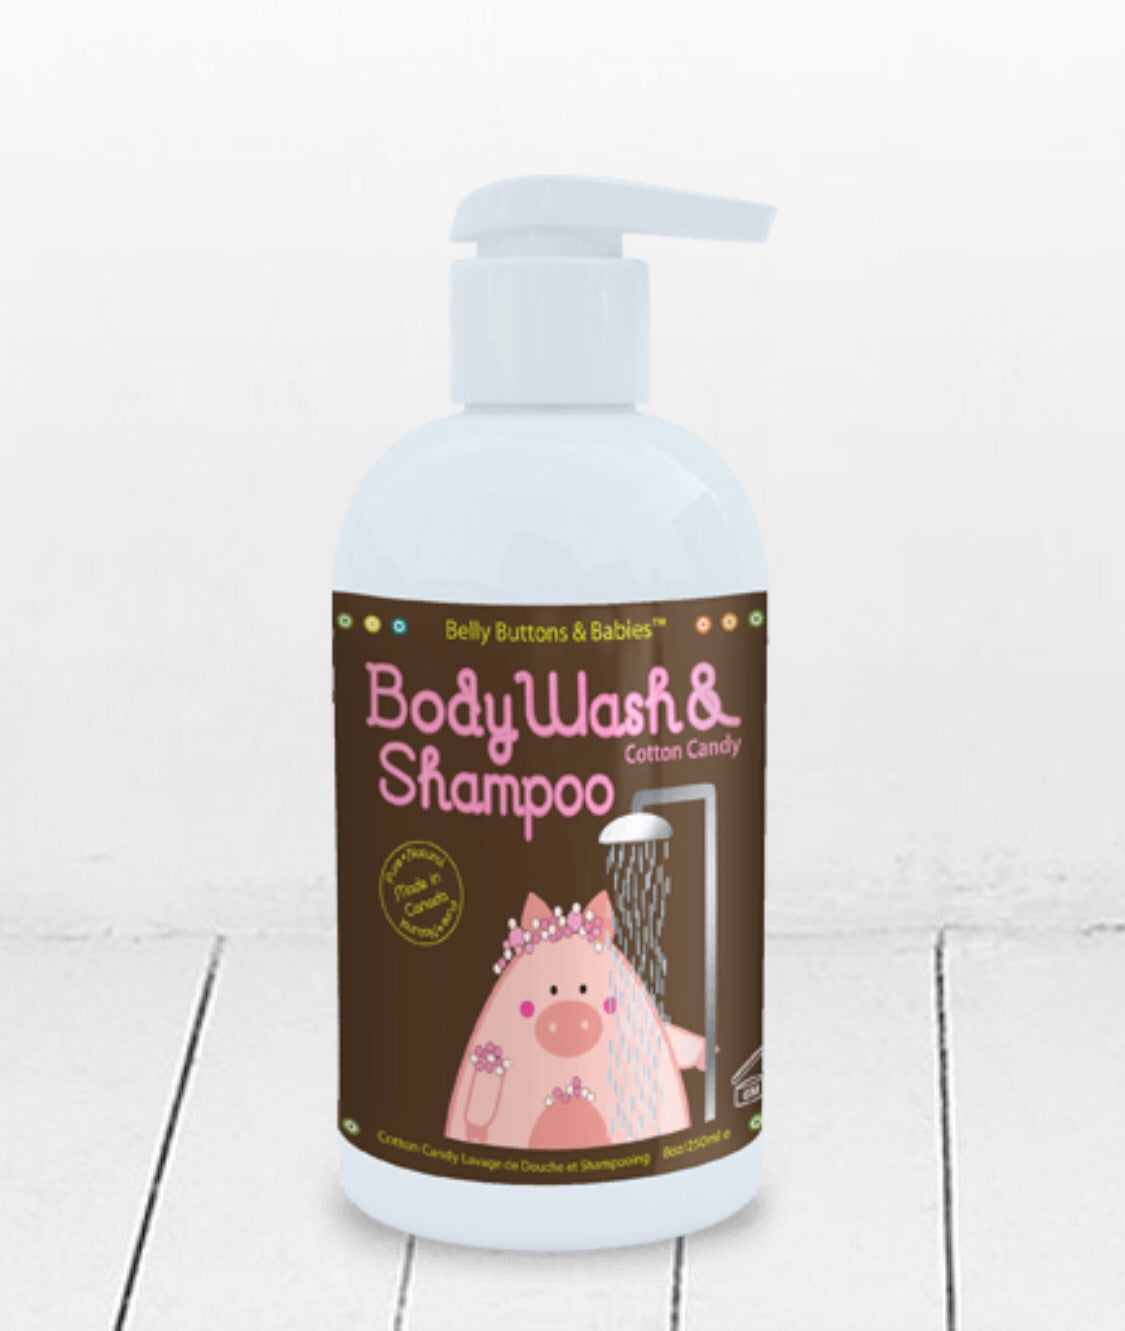 Belly Button & Babies Cotton Candy Mom & Baby Body Wash and Shampoo - Le Bébé Chic Boutique